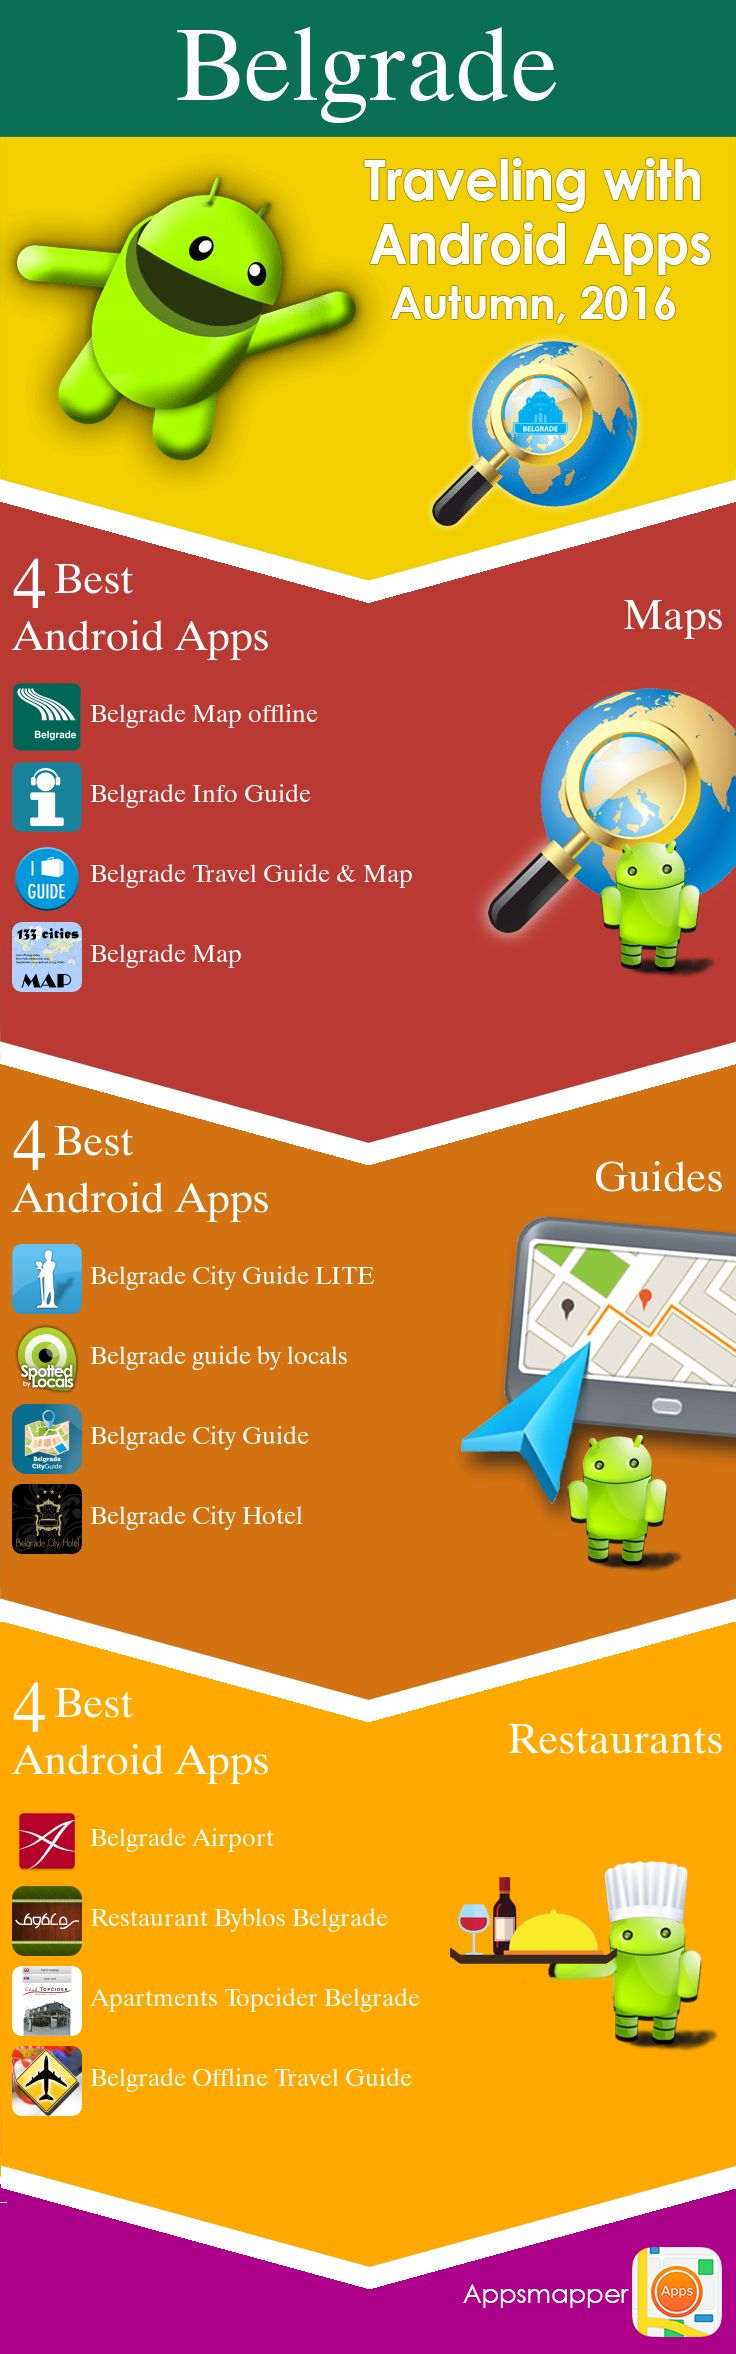 Belgrade Android apps: Travel Guides, Maps, Transportation, Biking, Museums, Parking, Sport and apps for Students.